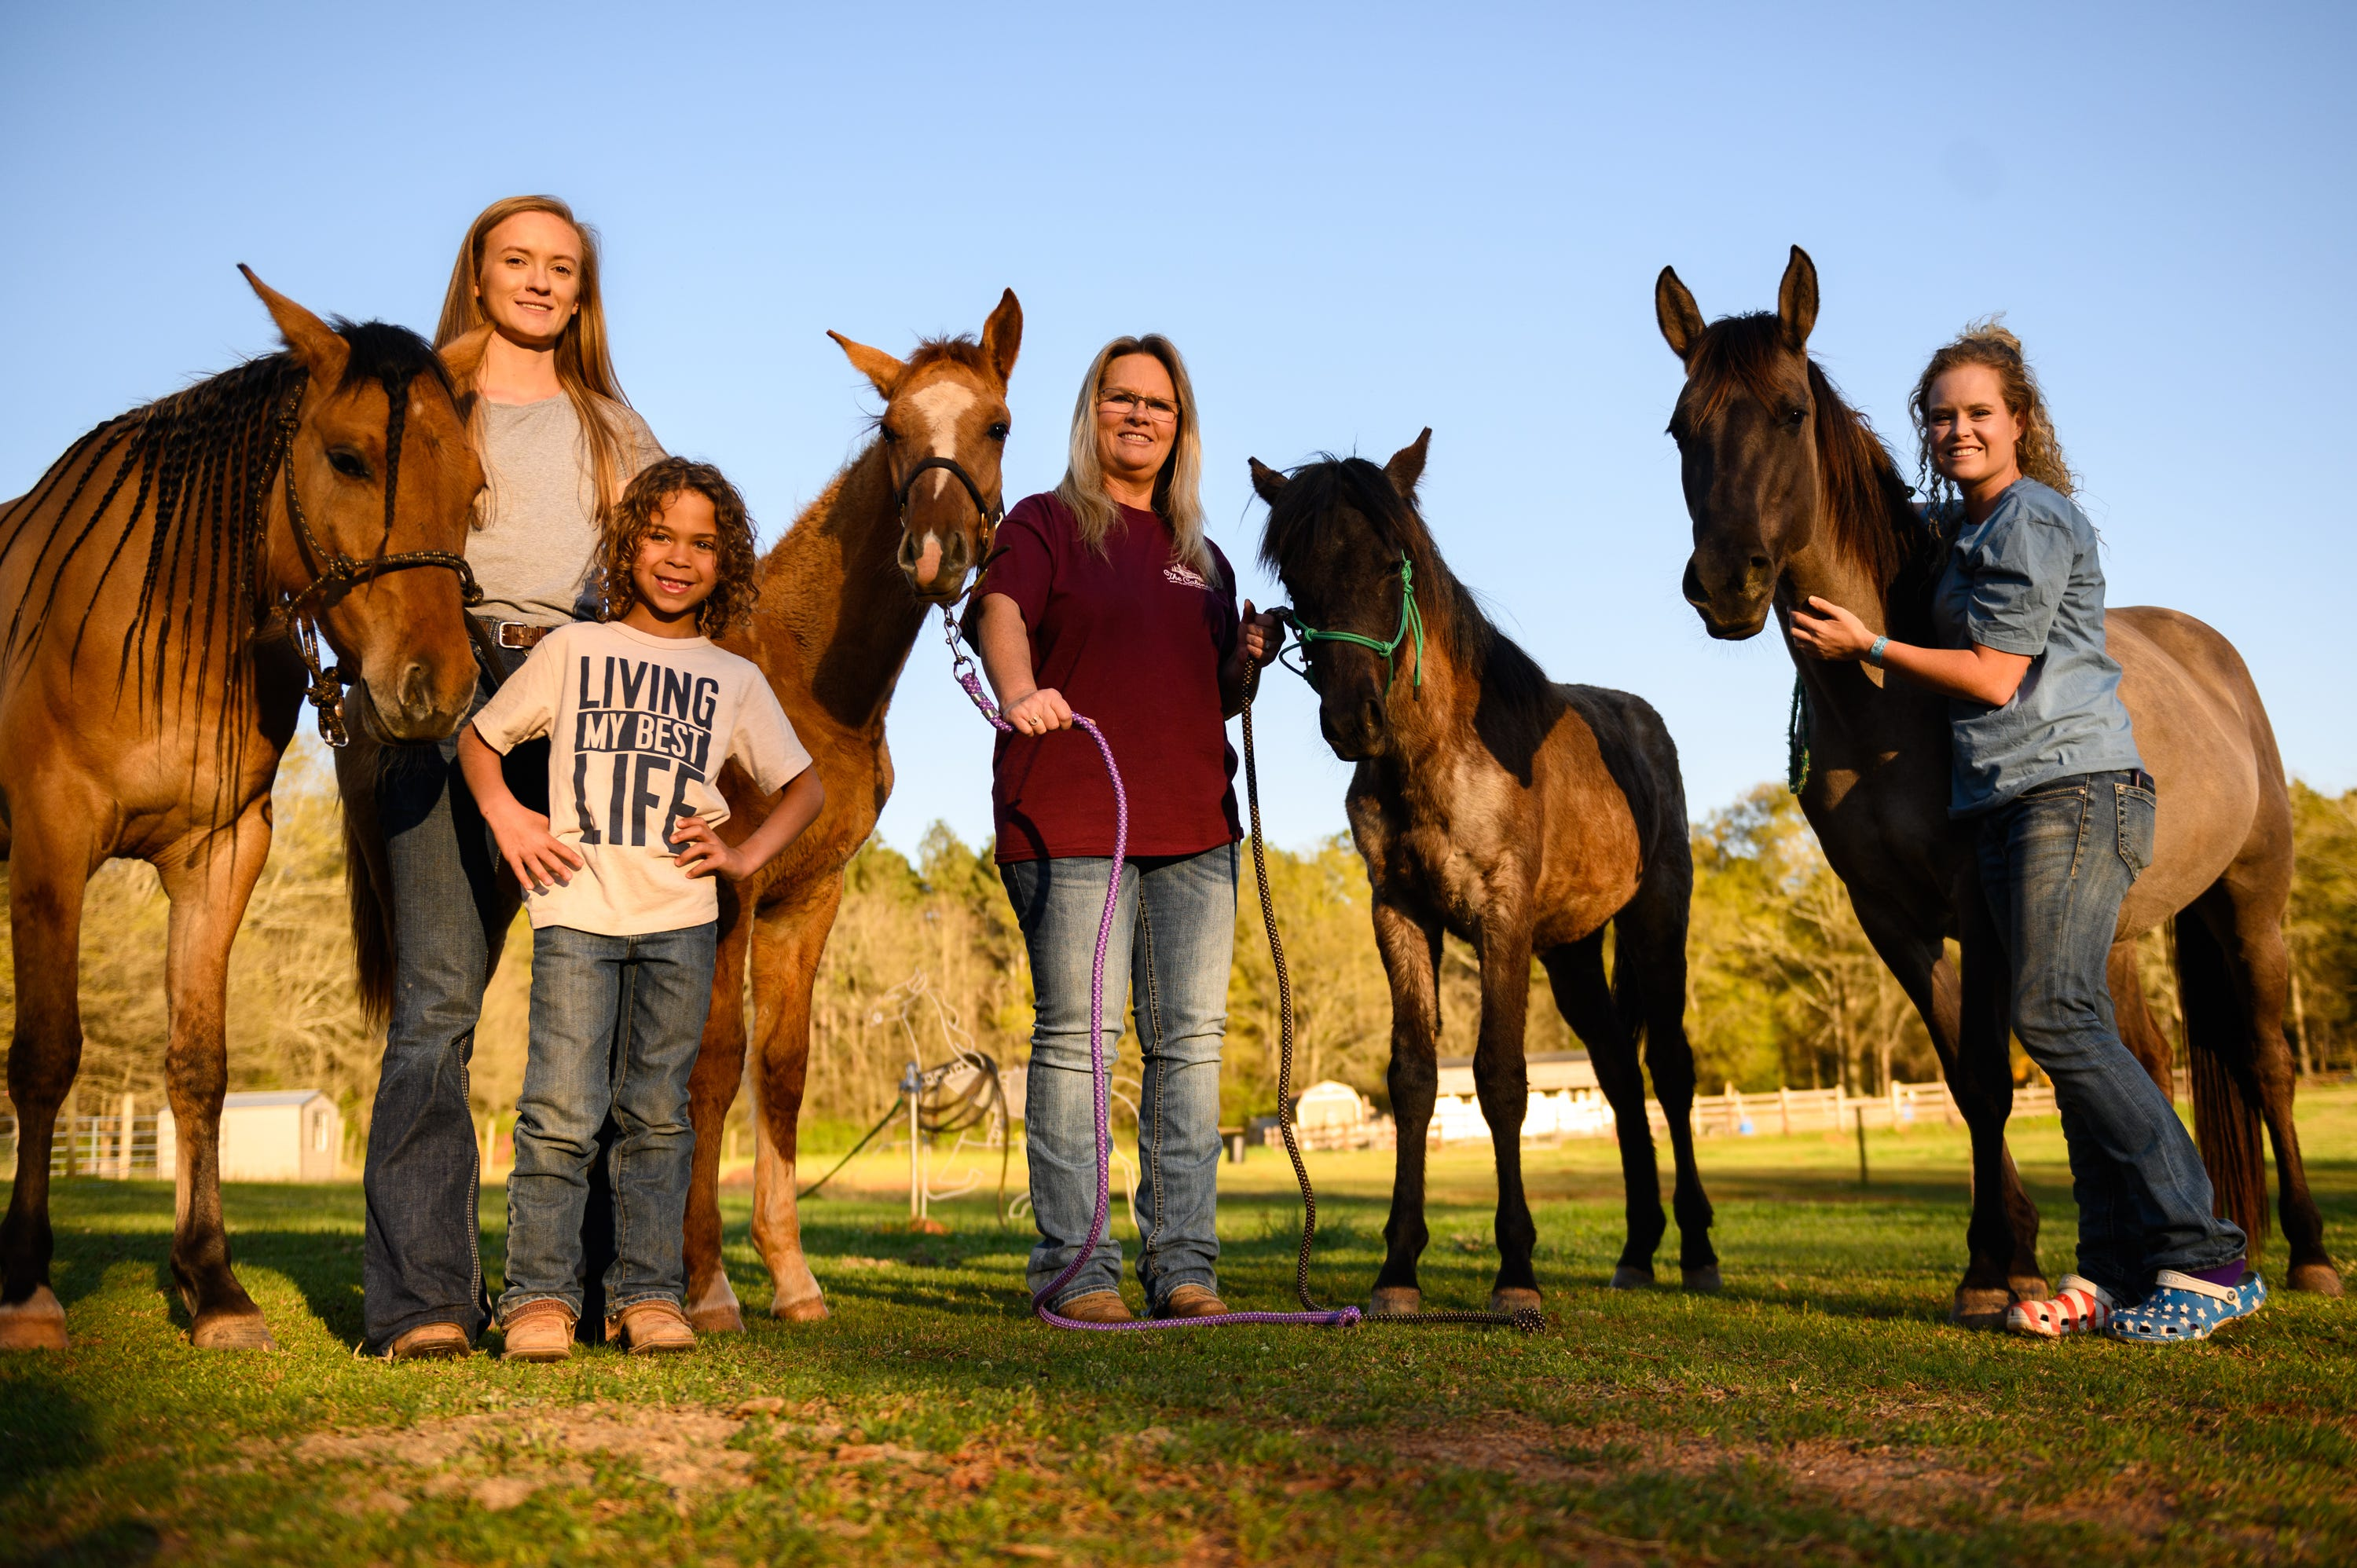 Laikyn Hawk, Kash Griffin, Tammy Coppage and Molly Simpson pose with their Marsh Tacky horses Estelita, Blue Jeans, Cricket and Sprite on March 29, 2021. The Marsh Tacky is believed to be a descendant of Spanish horses that evolved to have unique adaptations to the marshy low country conditions.